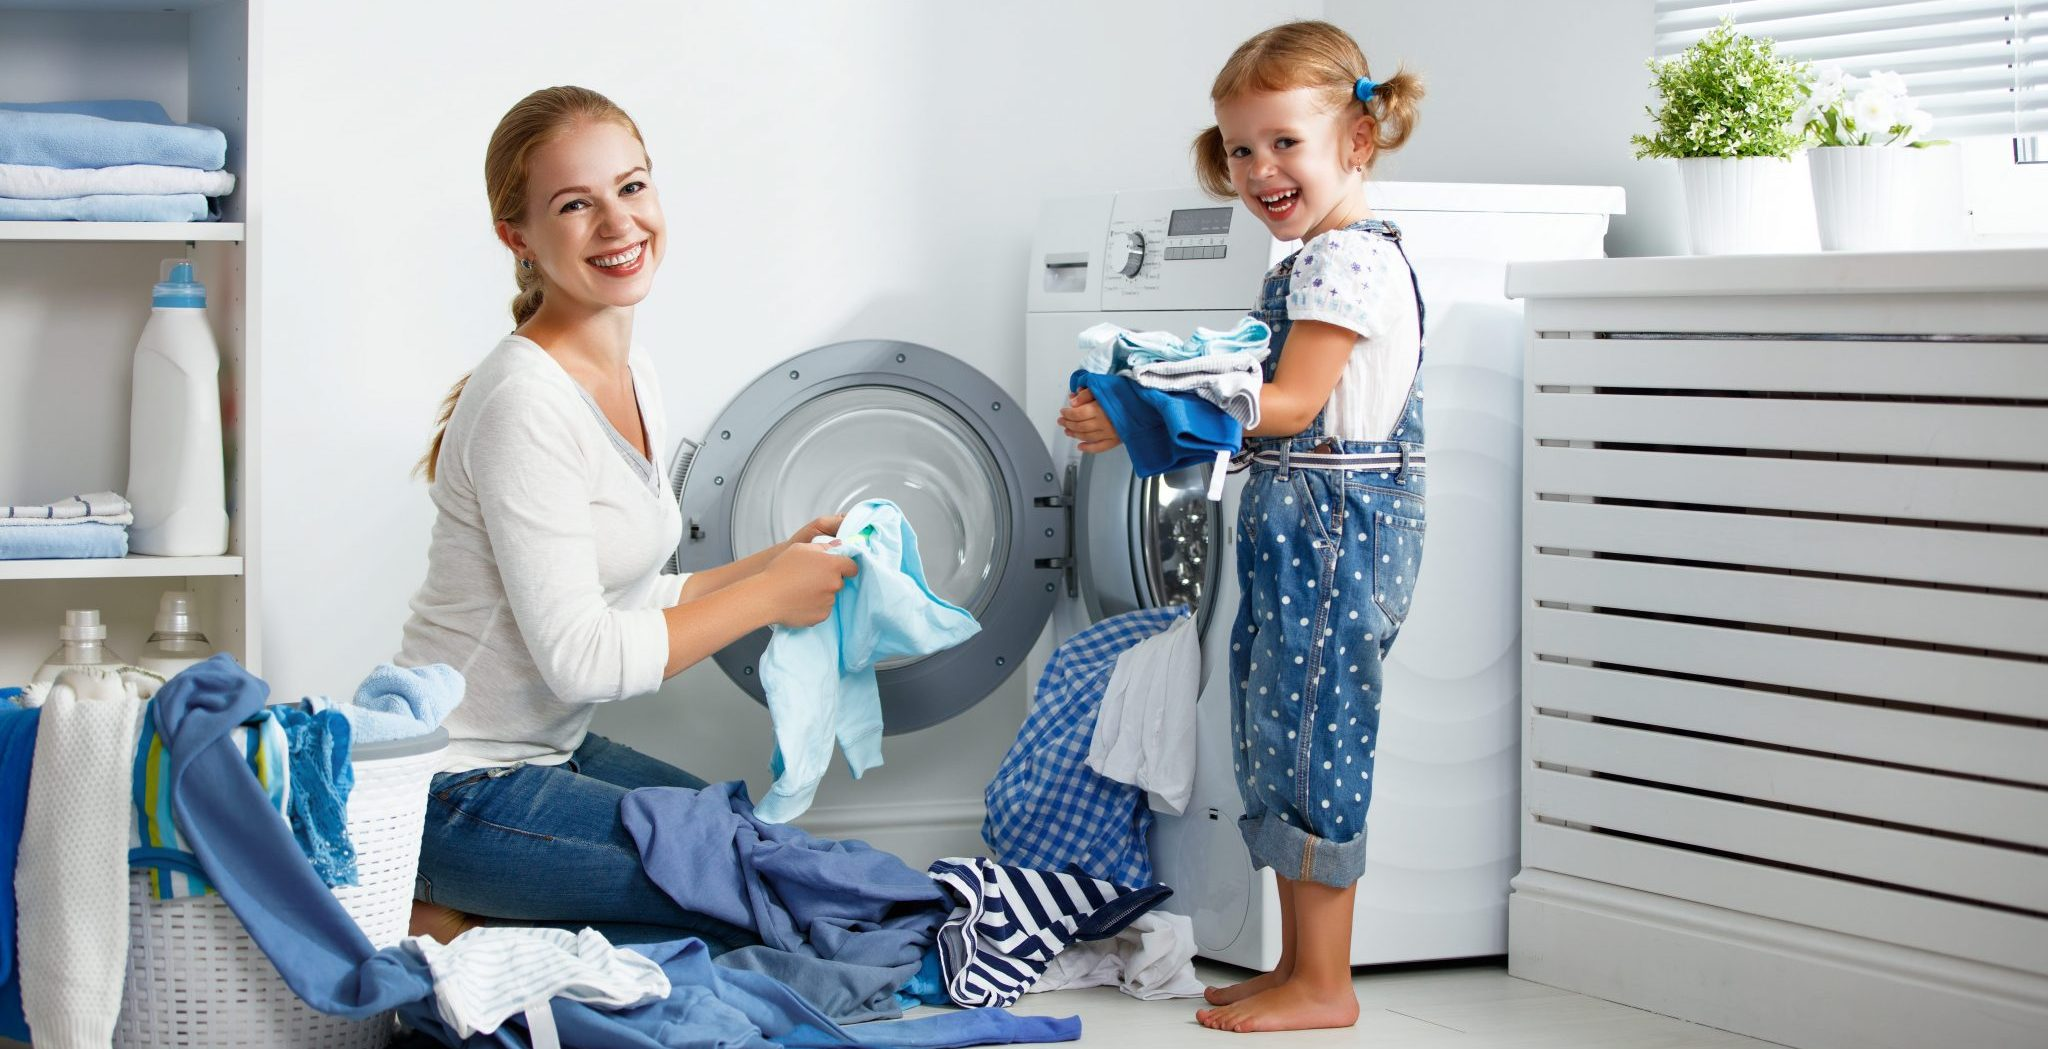 child laudry room Child Laundry Room Image & Photo (Free Trial) | Bigstock